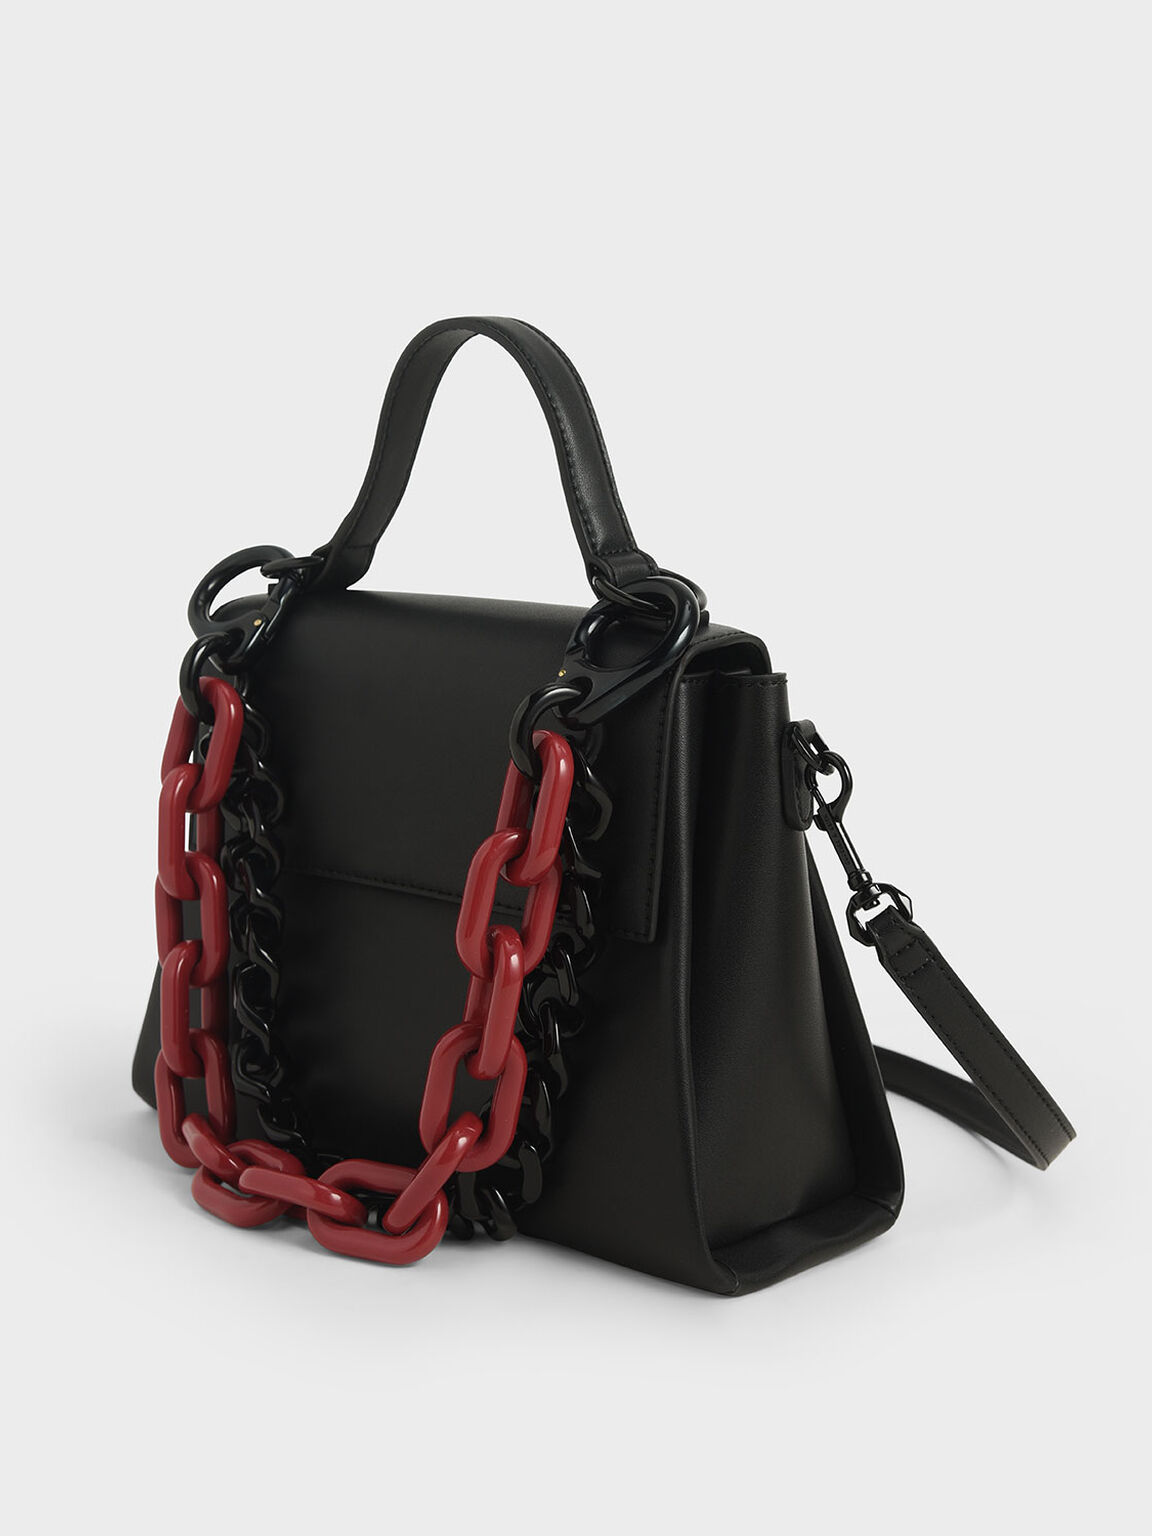 Double Chain Link Bag, Black, hi-res